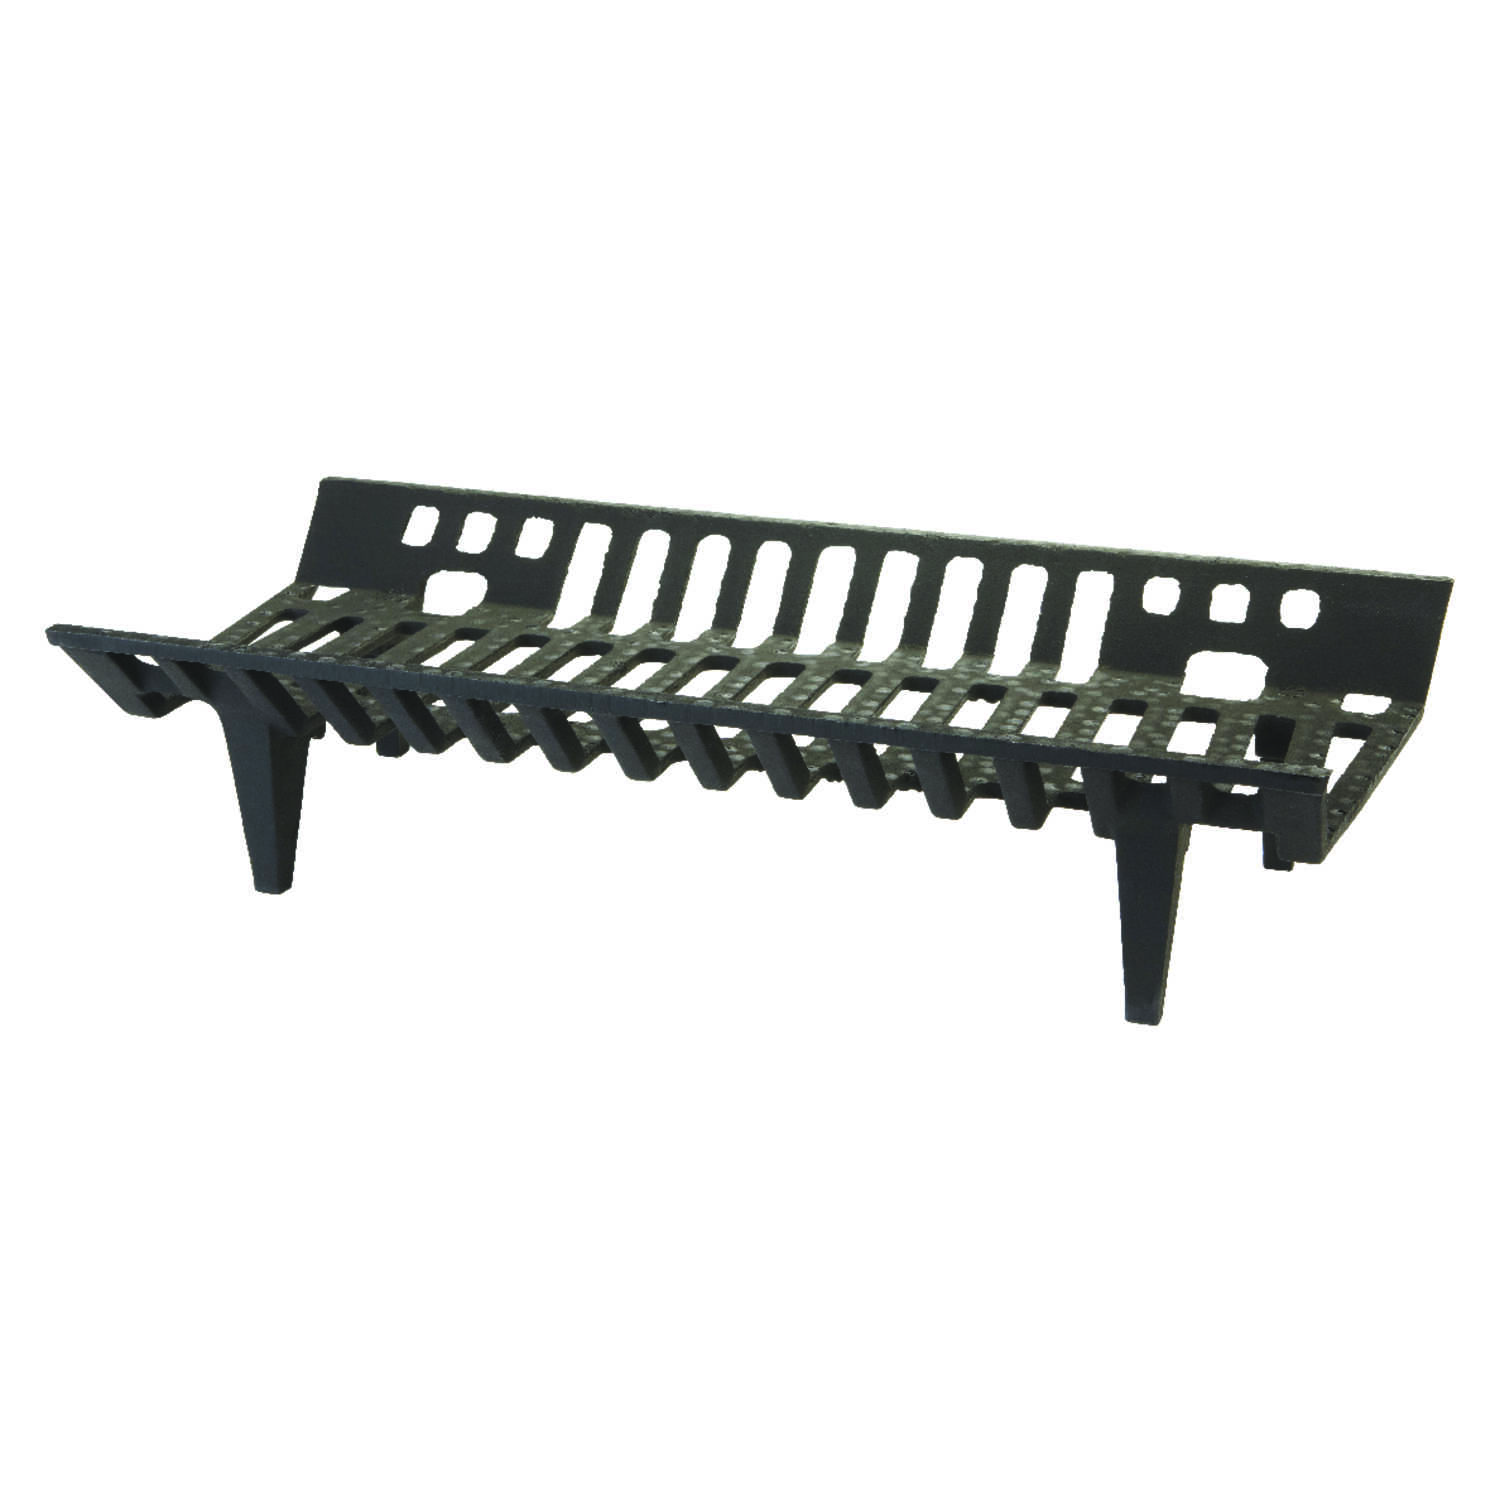 Vestal  Black  Painted  Fireplace Grate  Cast Iron